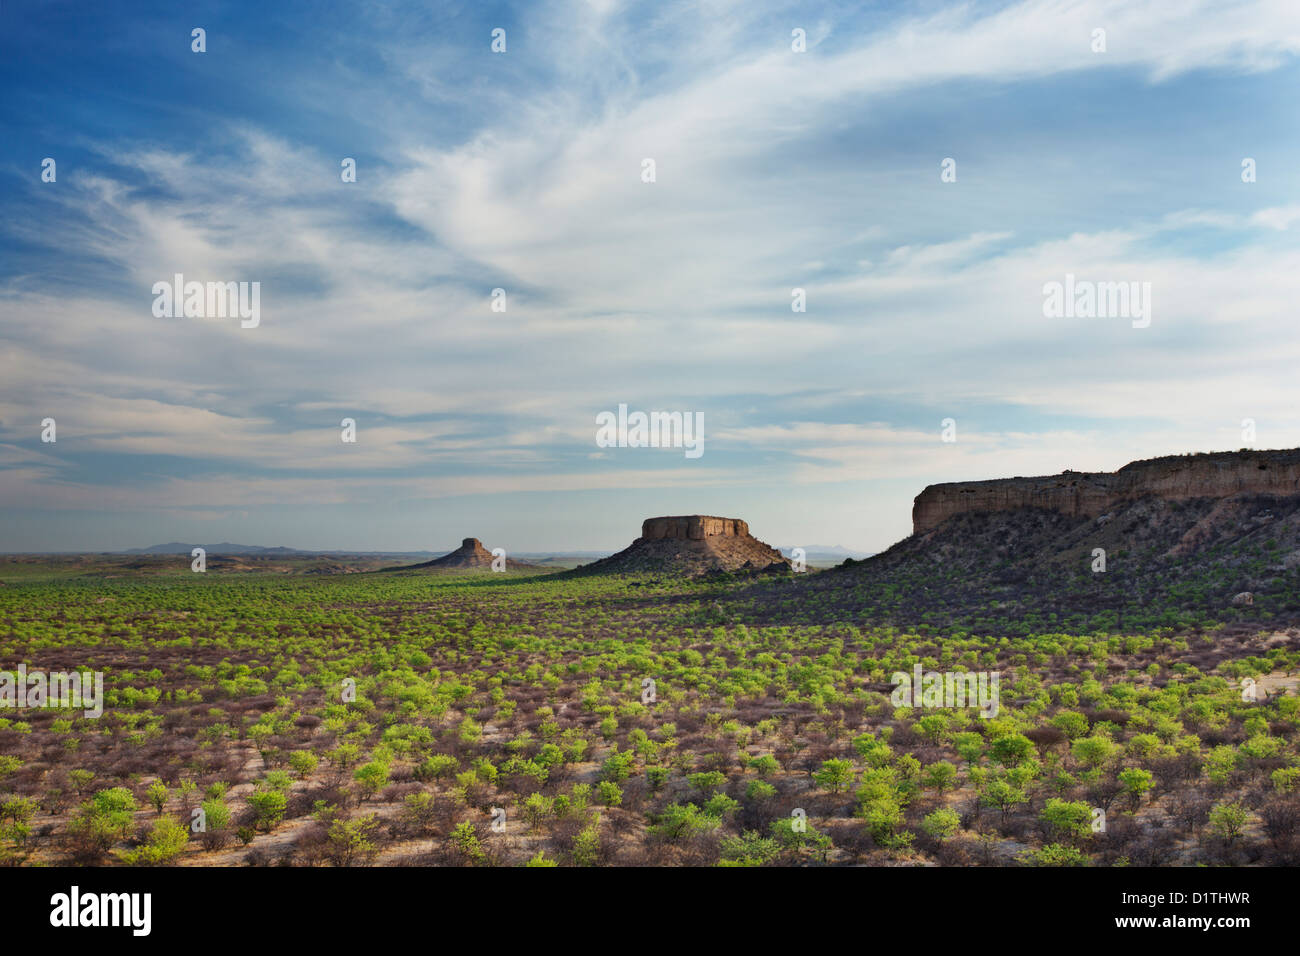 View of Ugab Terraces from Finger Rock in Damaraland in Namibia - Stock Image